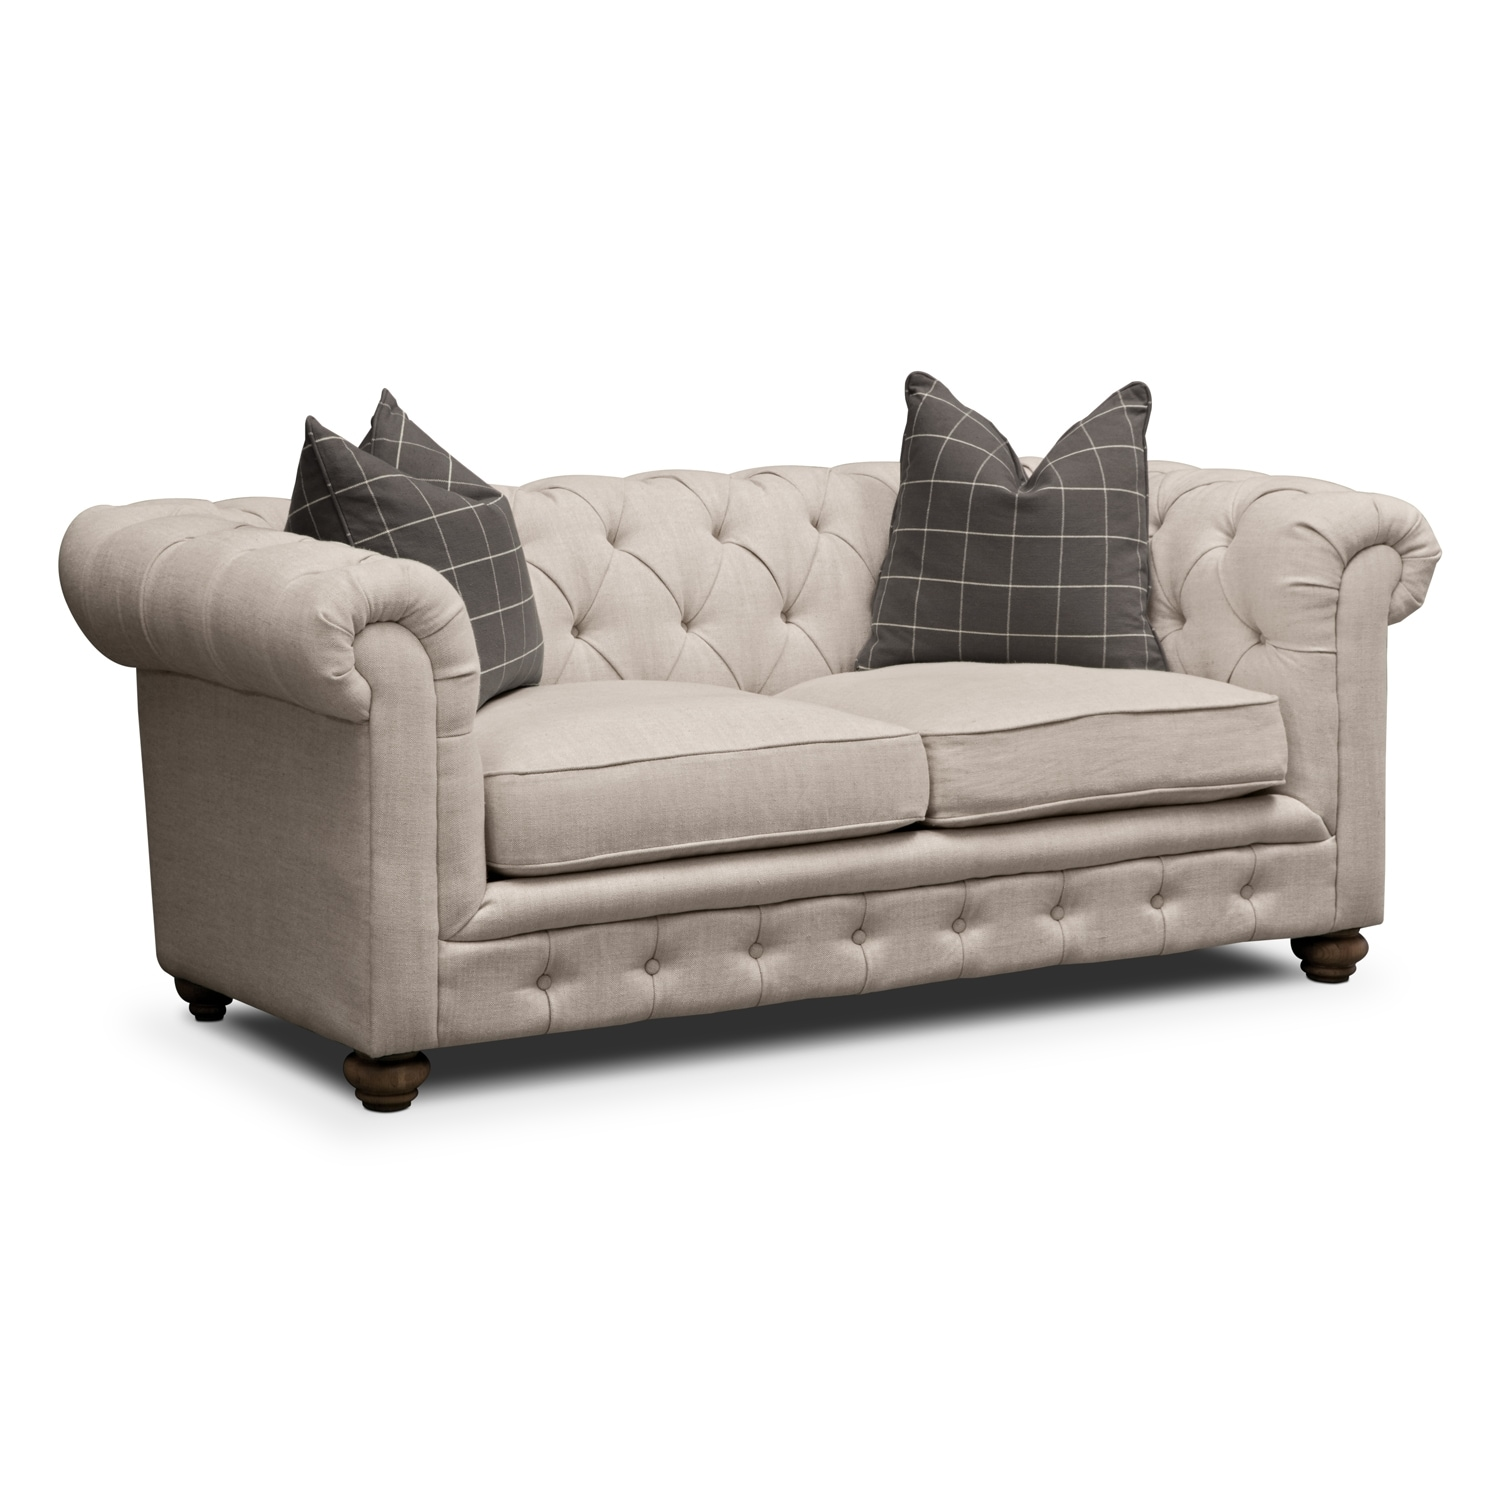 Living Room Furniture - Madeline Apartment Sofa - Beige